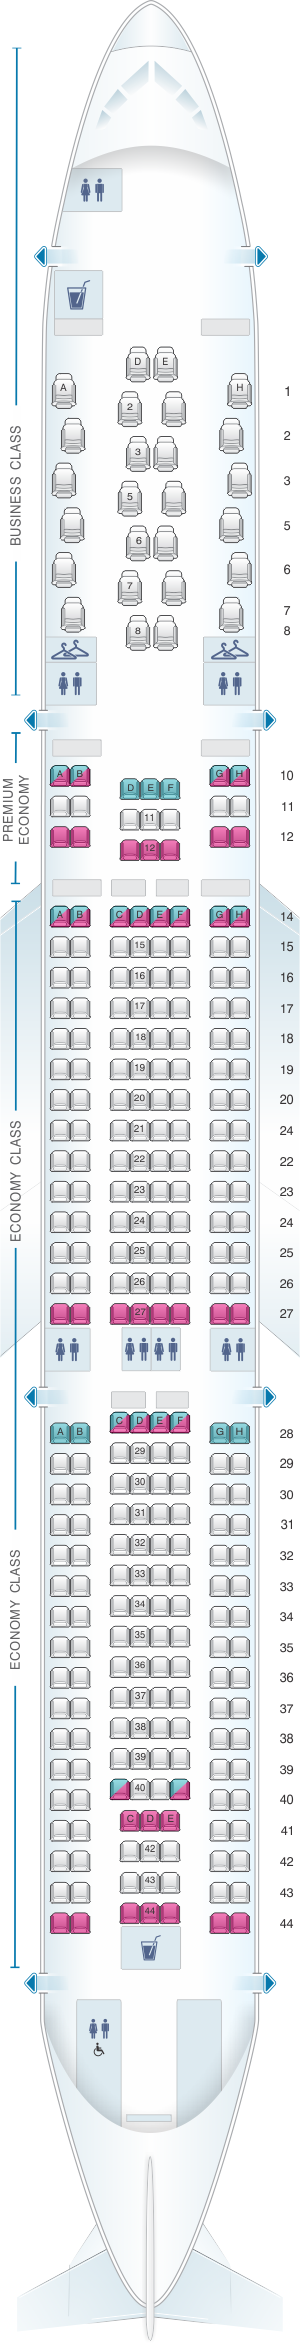 Seat map for Air Calin Airbus A330 Neo